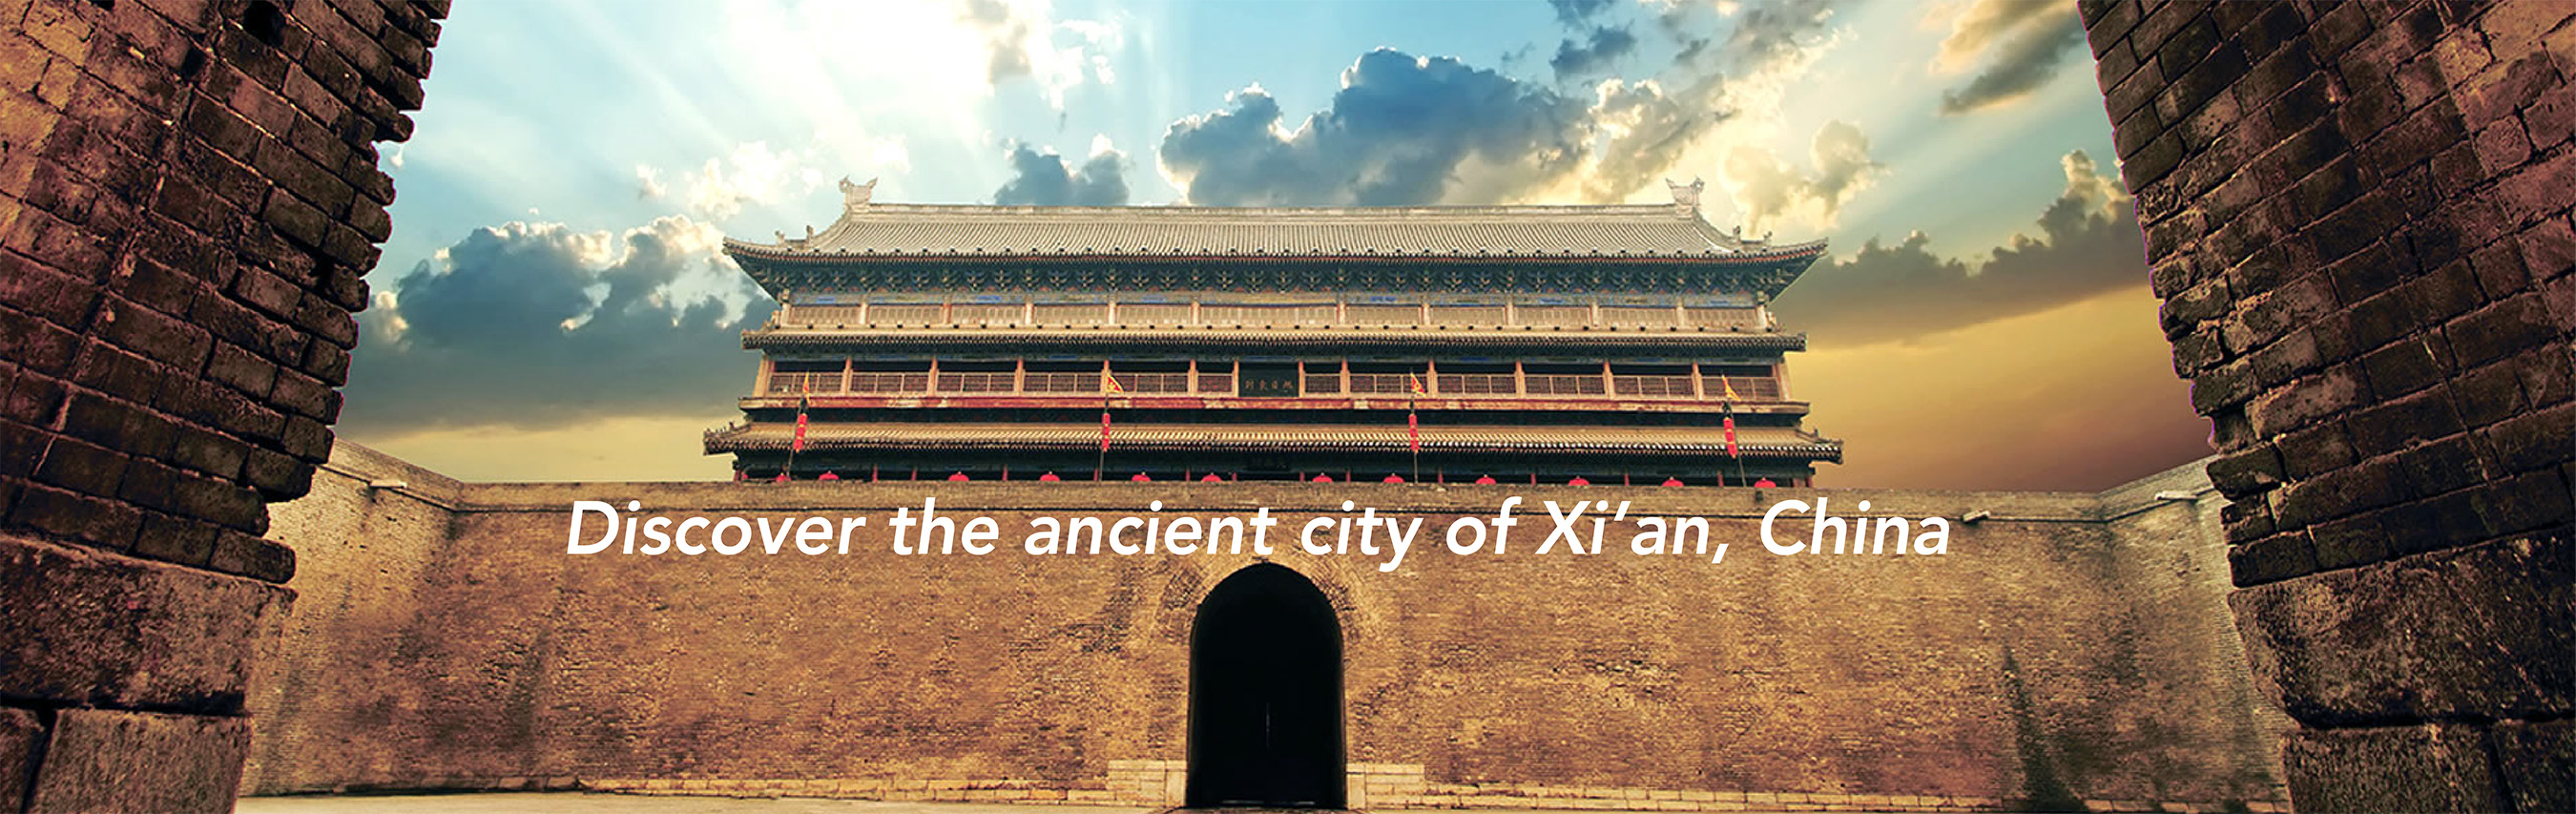 Discover the city of ancient Xi'an, China overlayed on an image of a temple